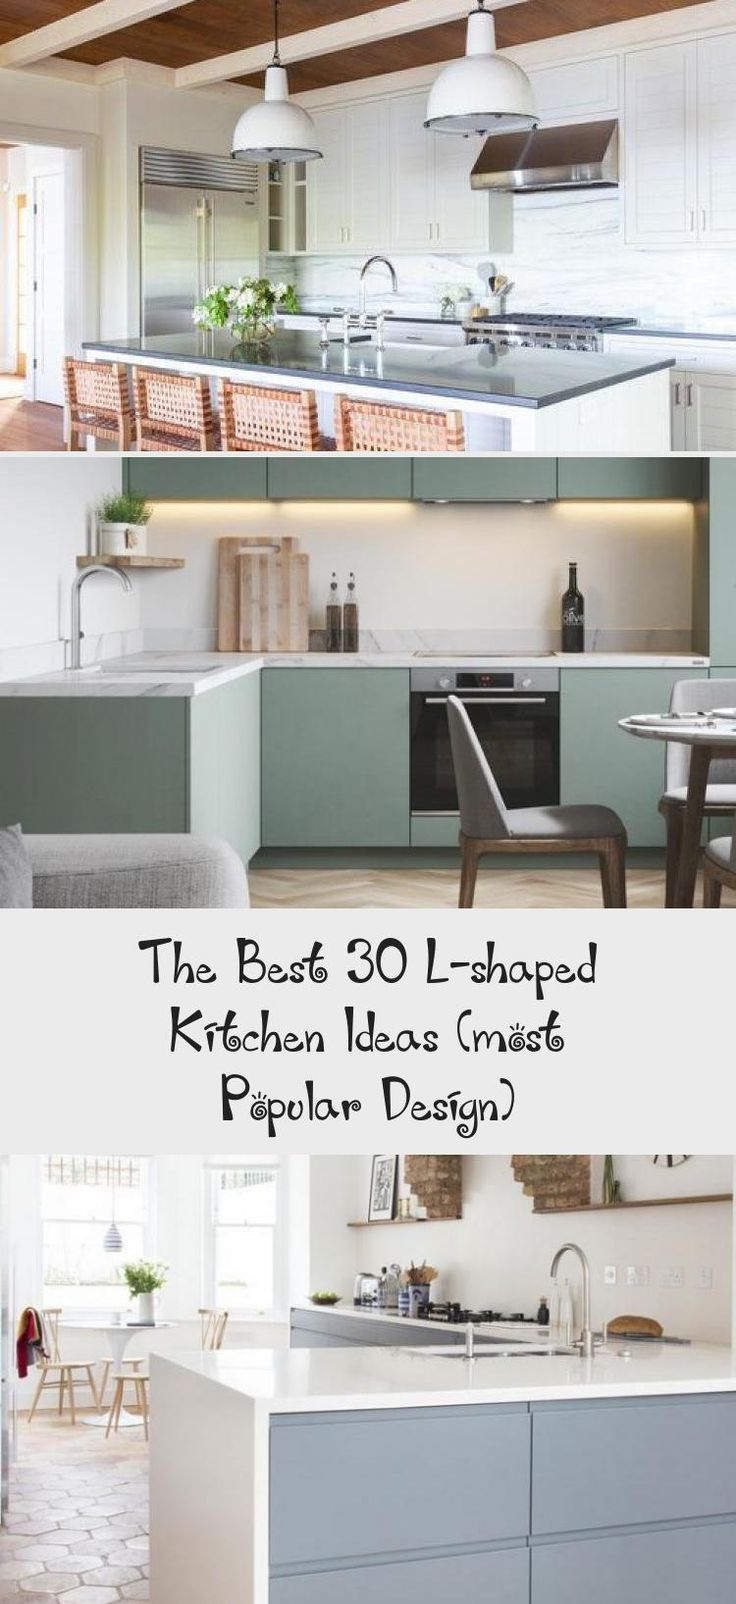 the best 30 l shaped kitchen ideas most popular design in 2020 with images kitchen design on l kitchen id=54831